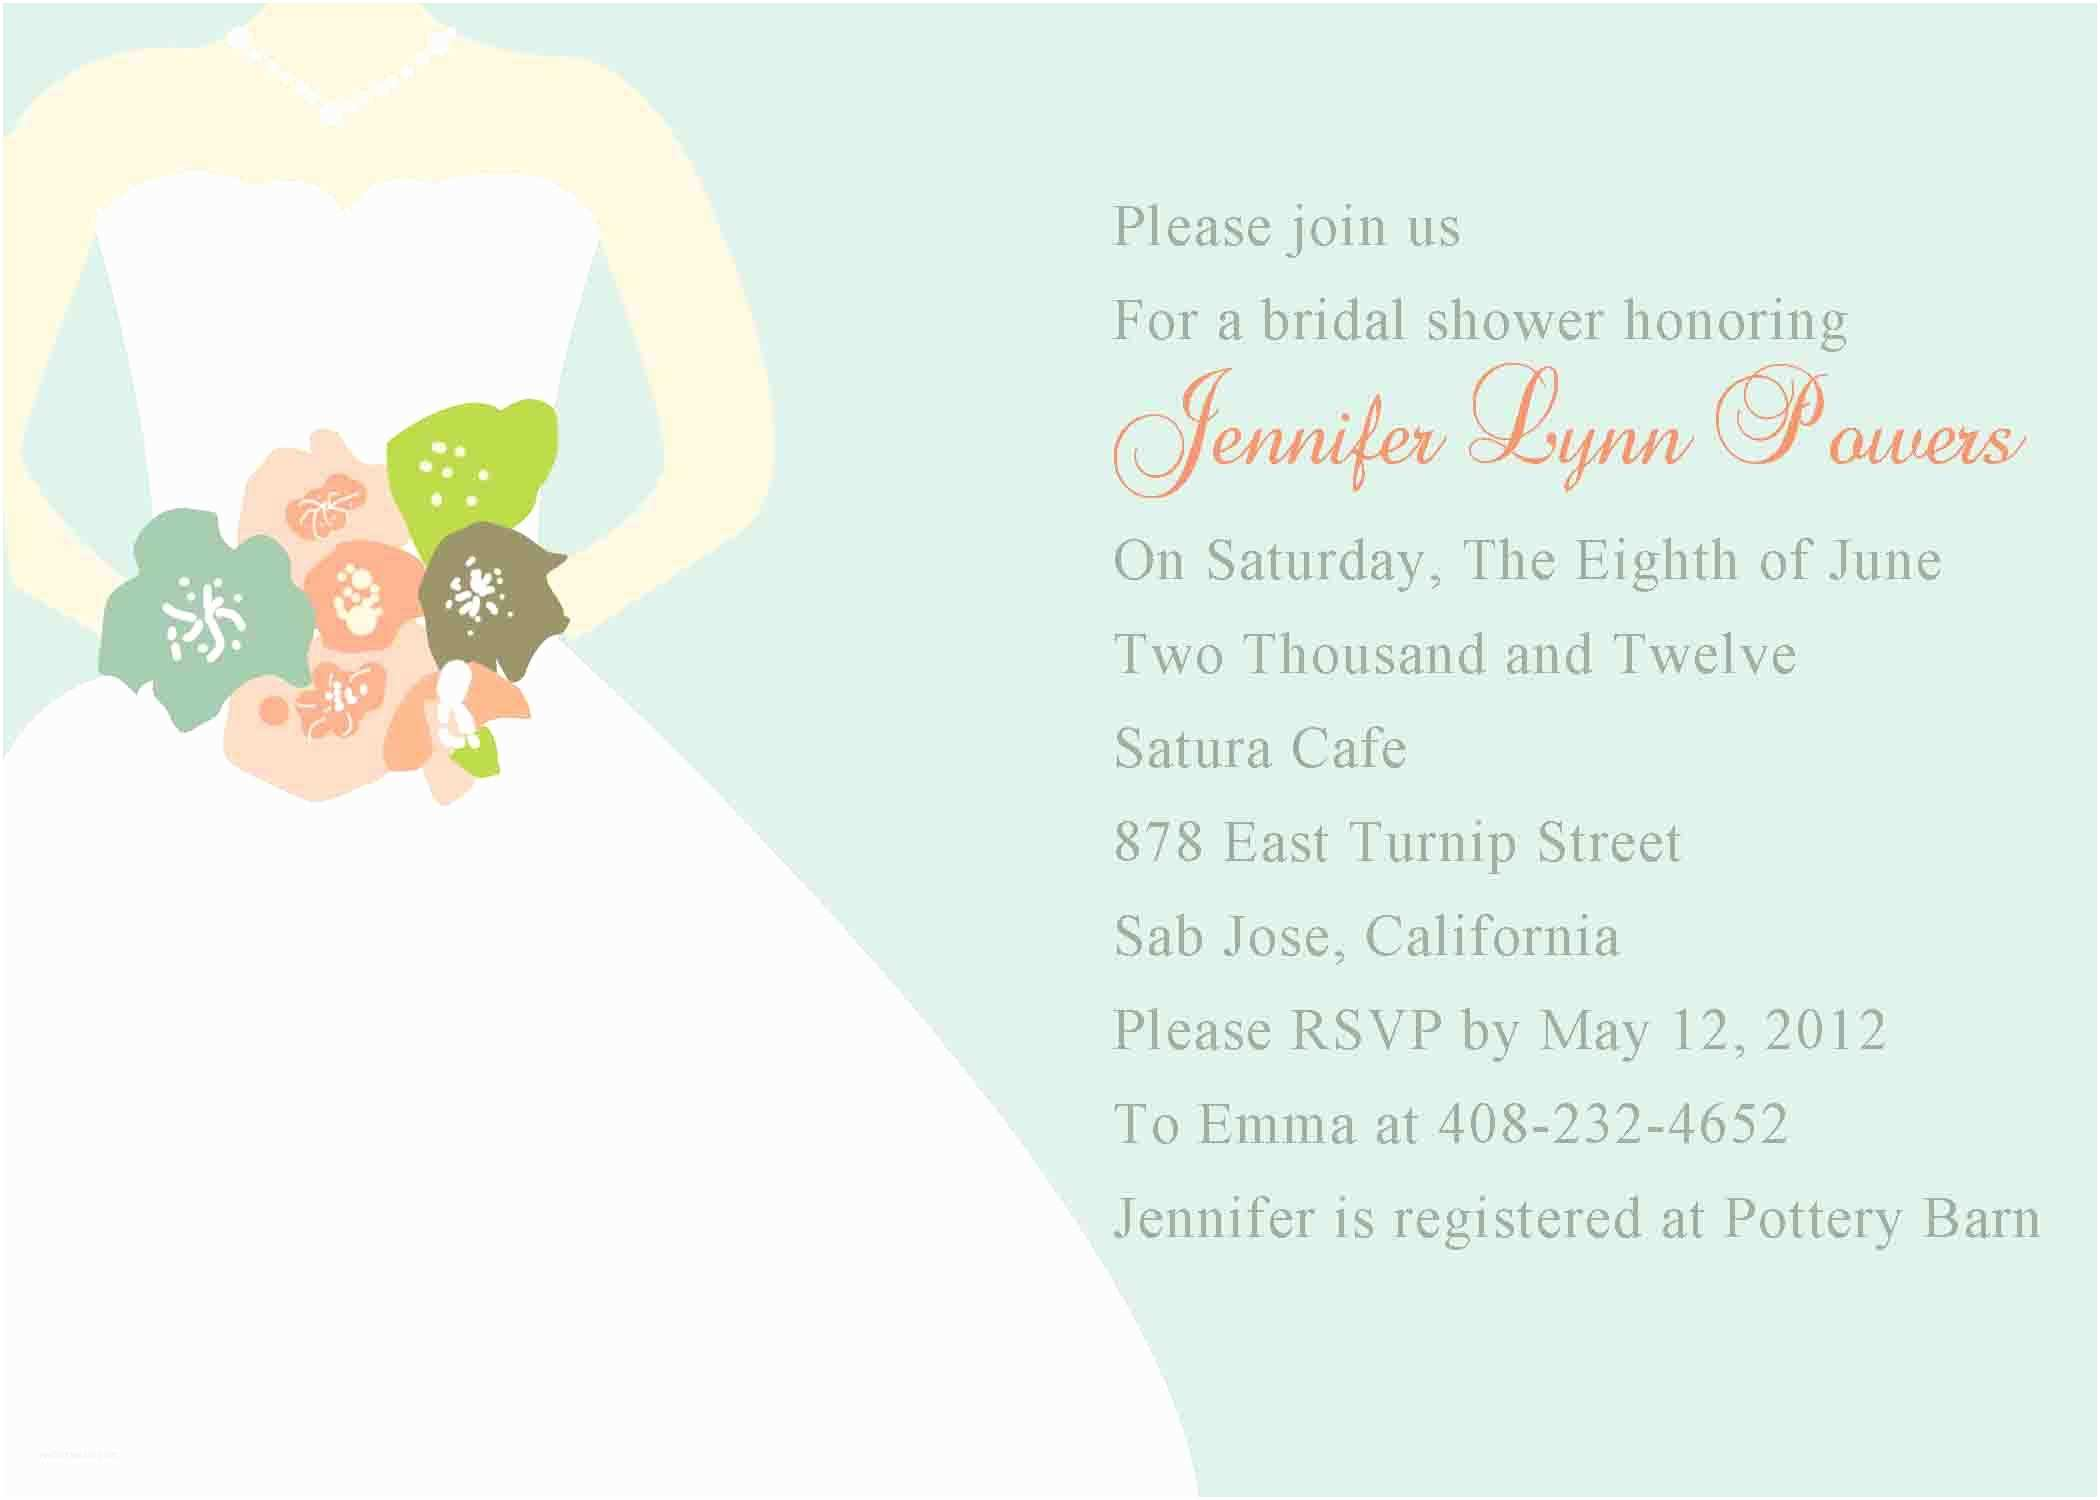 Couples Wedding Shower Invitations Templates Free Bridal Shower Invitation Templates Bridal Shower